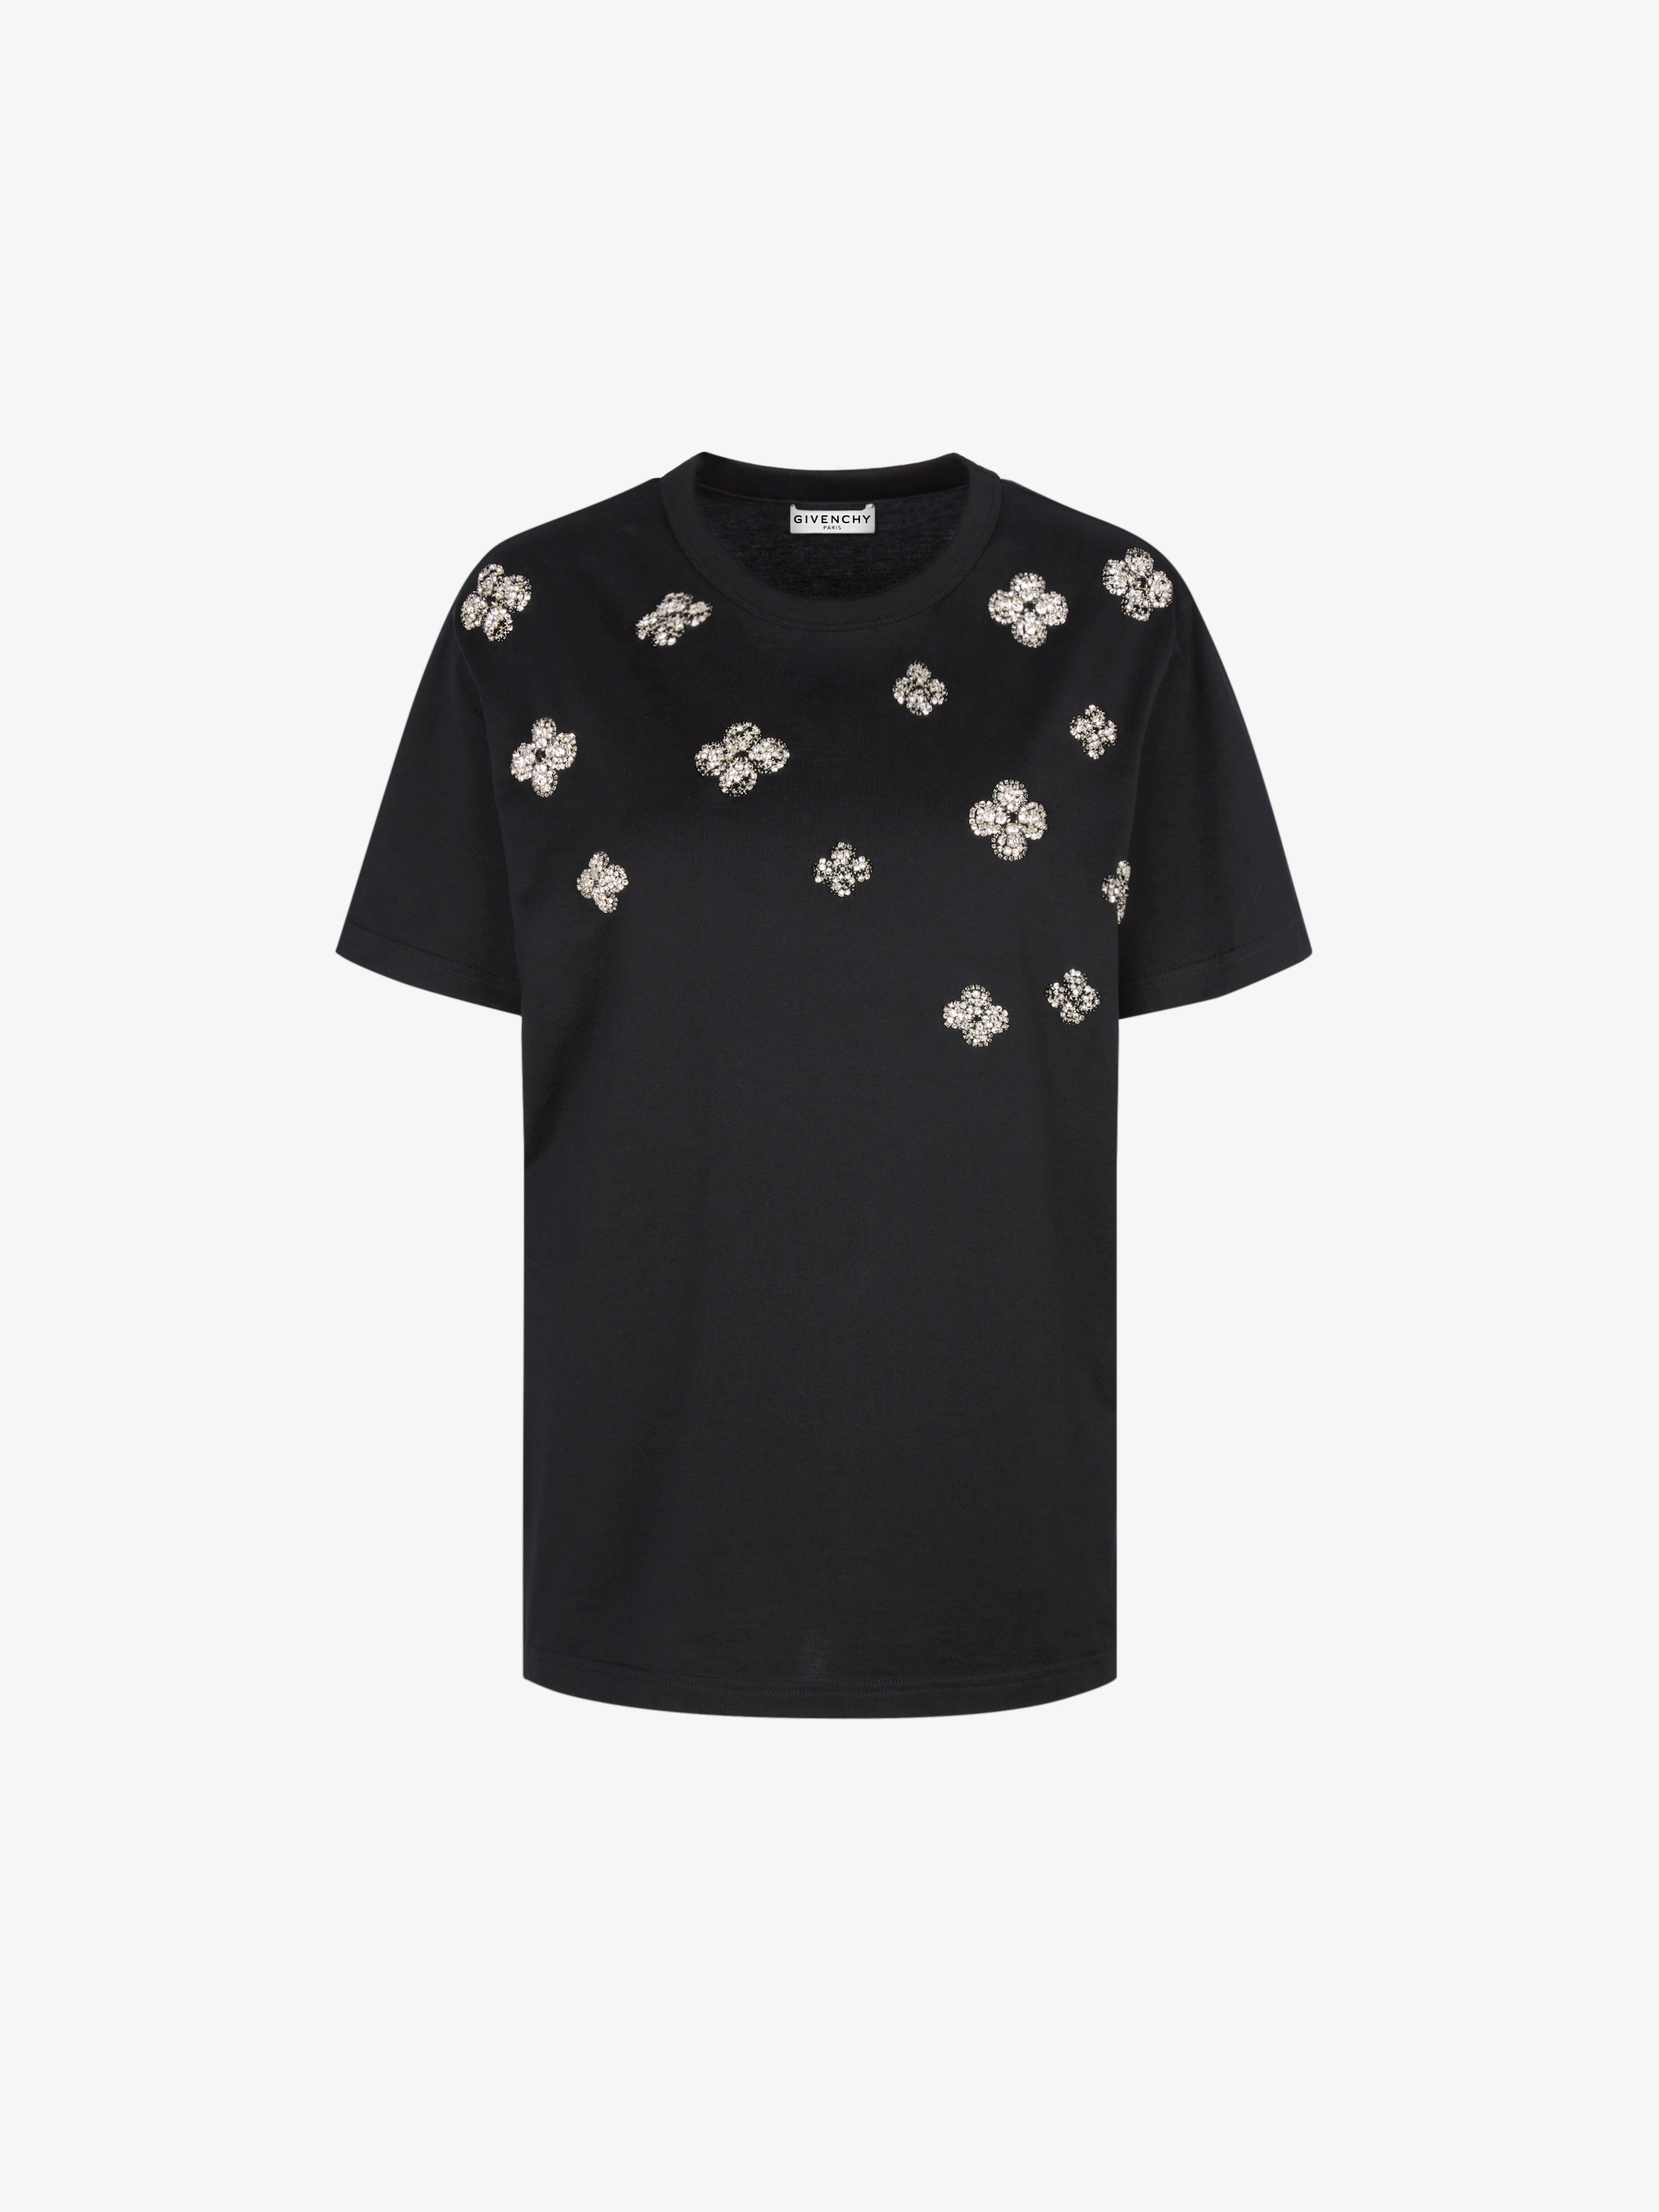 GIVENCHY crystals embroidered men's t-shirt